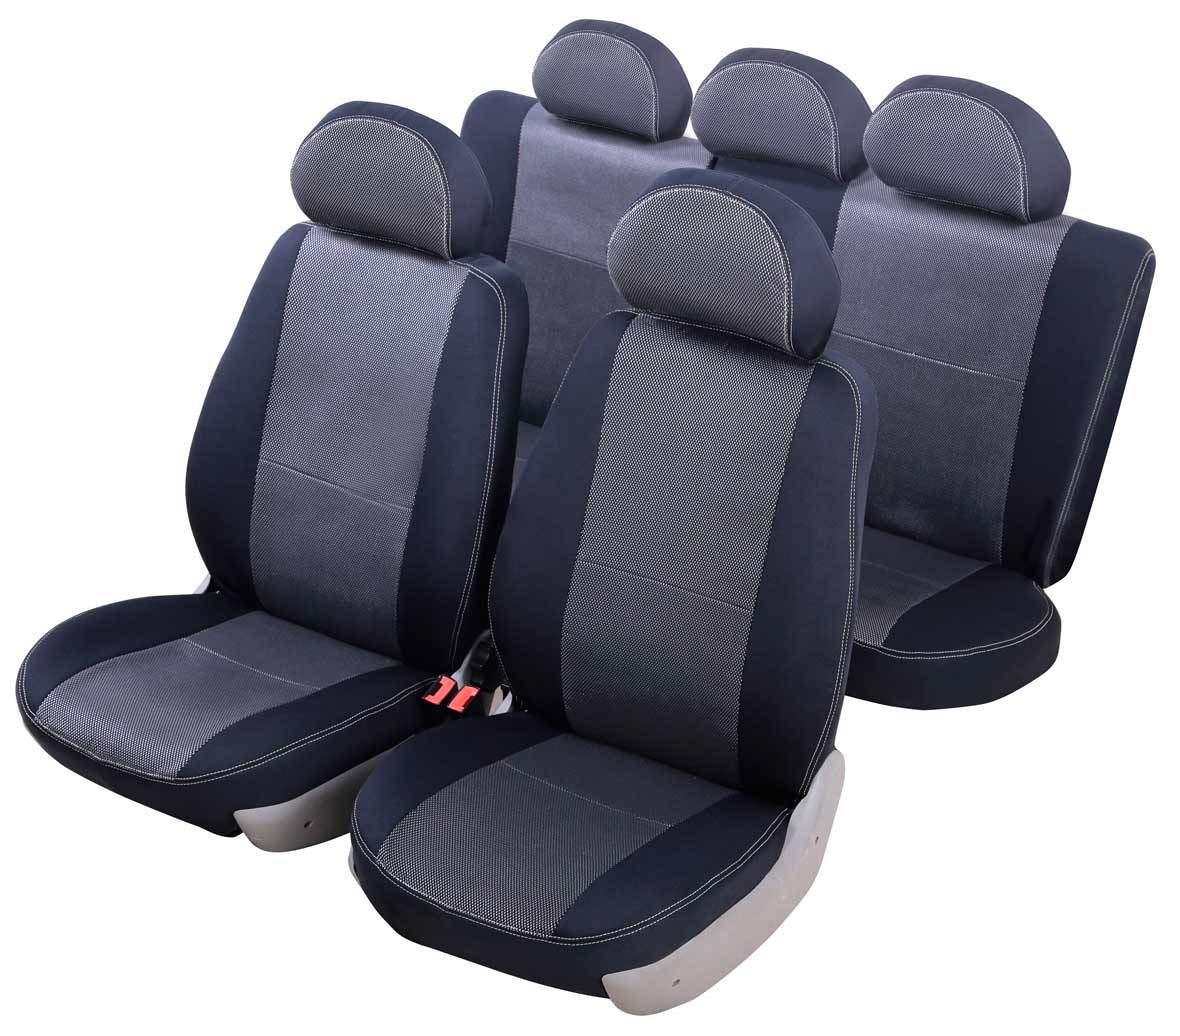 Чехол на сиденье Senator Dakkar mitsubishi lancer x yuzhe leather car seat cover for mitsubishi lancer outlander pajero eclipse zinger verada asx i200 car accessories styling